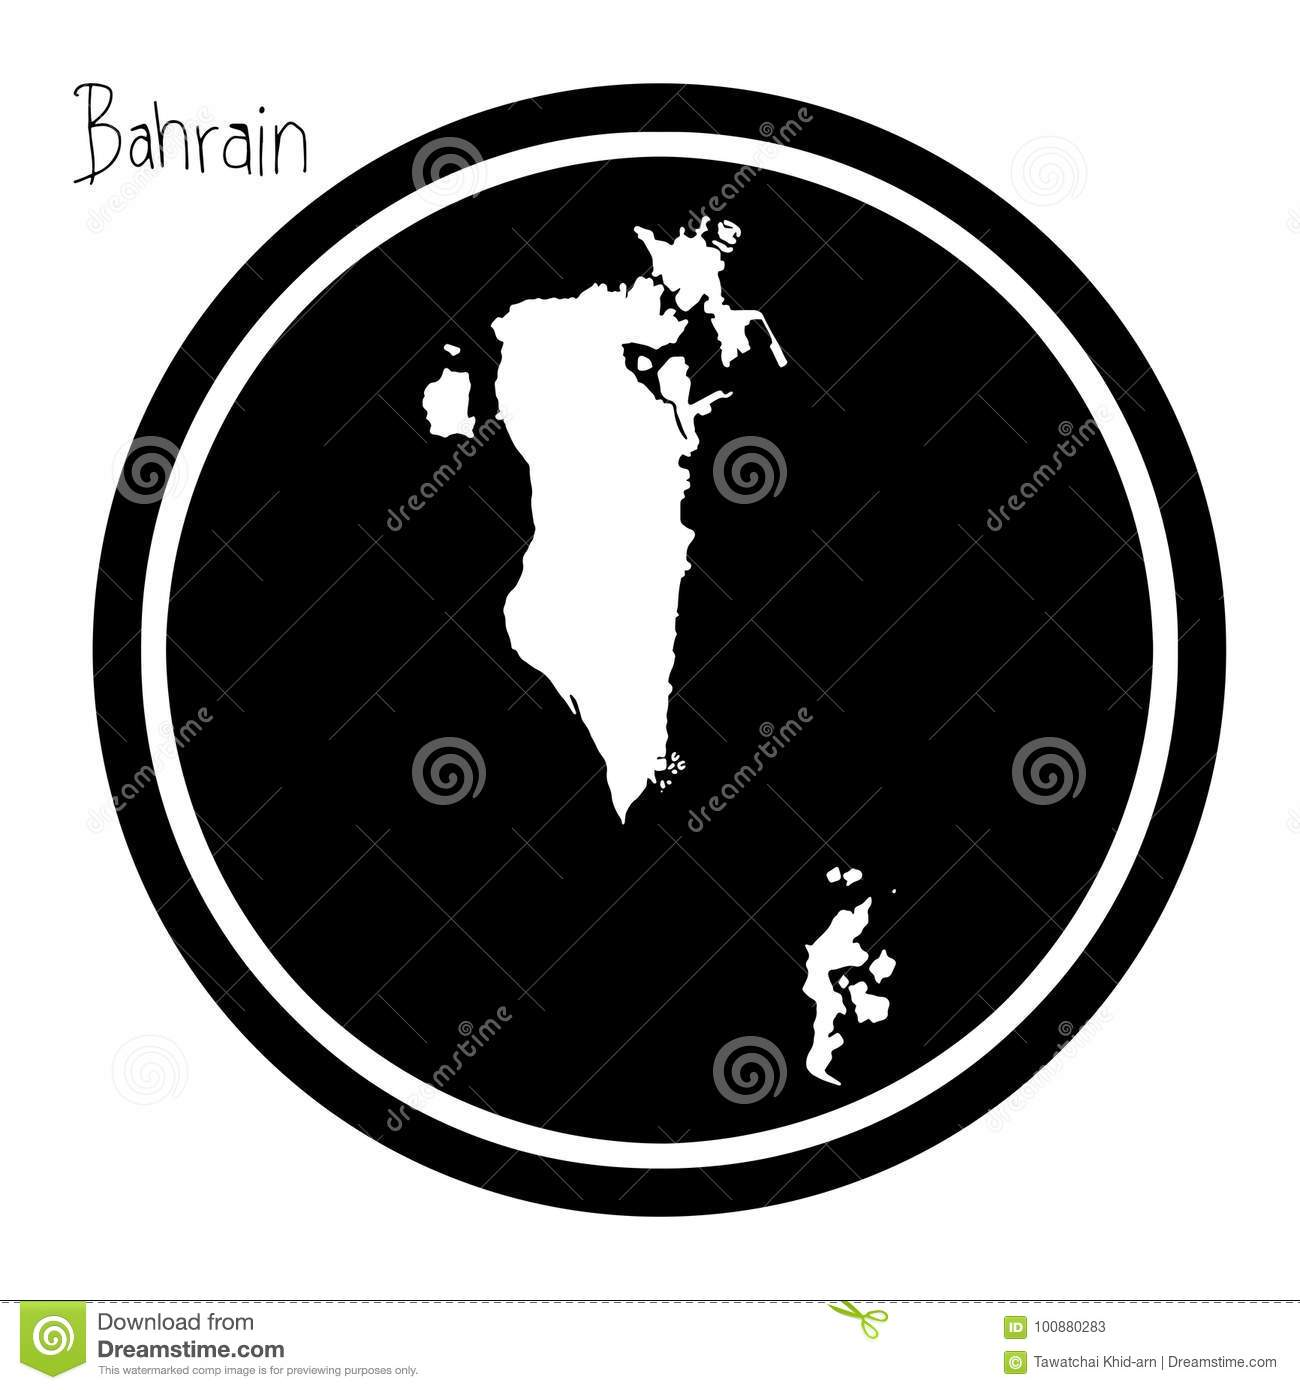 Vector Illustration White Map Of Bahrain On Black Circle, Isolated on map of oman, map of western europe, map of sinai peninsula, map of mediterranean countries, map of persian gulf, map of cote d'ivoire, map of italy, map of croatia, map of eritrea, map of greece, map of qatar, map of djibouti, map of kuwait, map of philippines, map of australia, map of czech republic, map saudi arabia, map of western sahara, map of sri lanka, map of middle east,